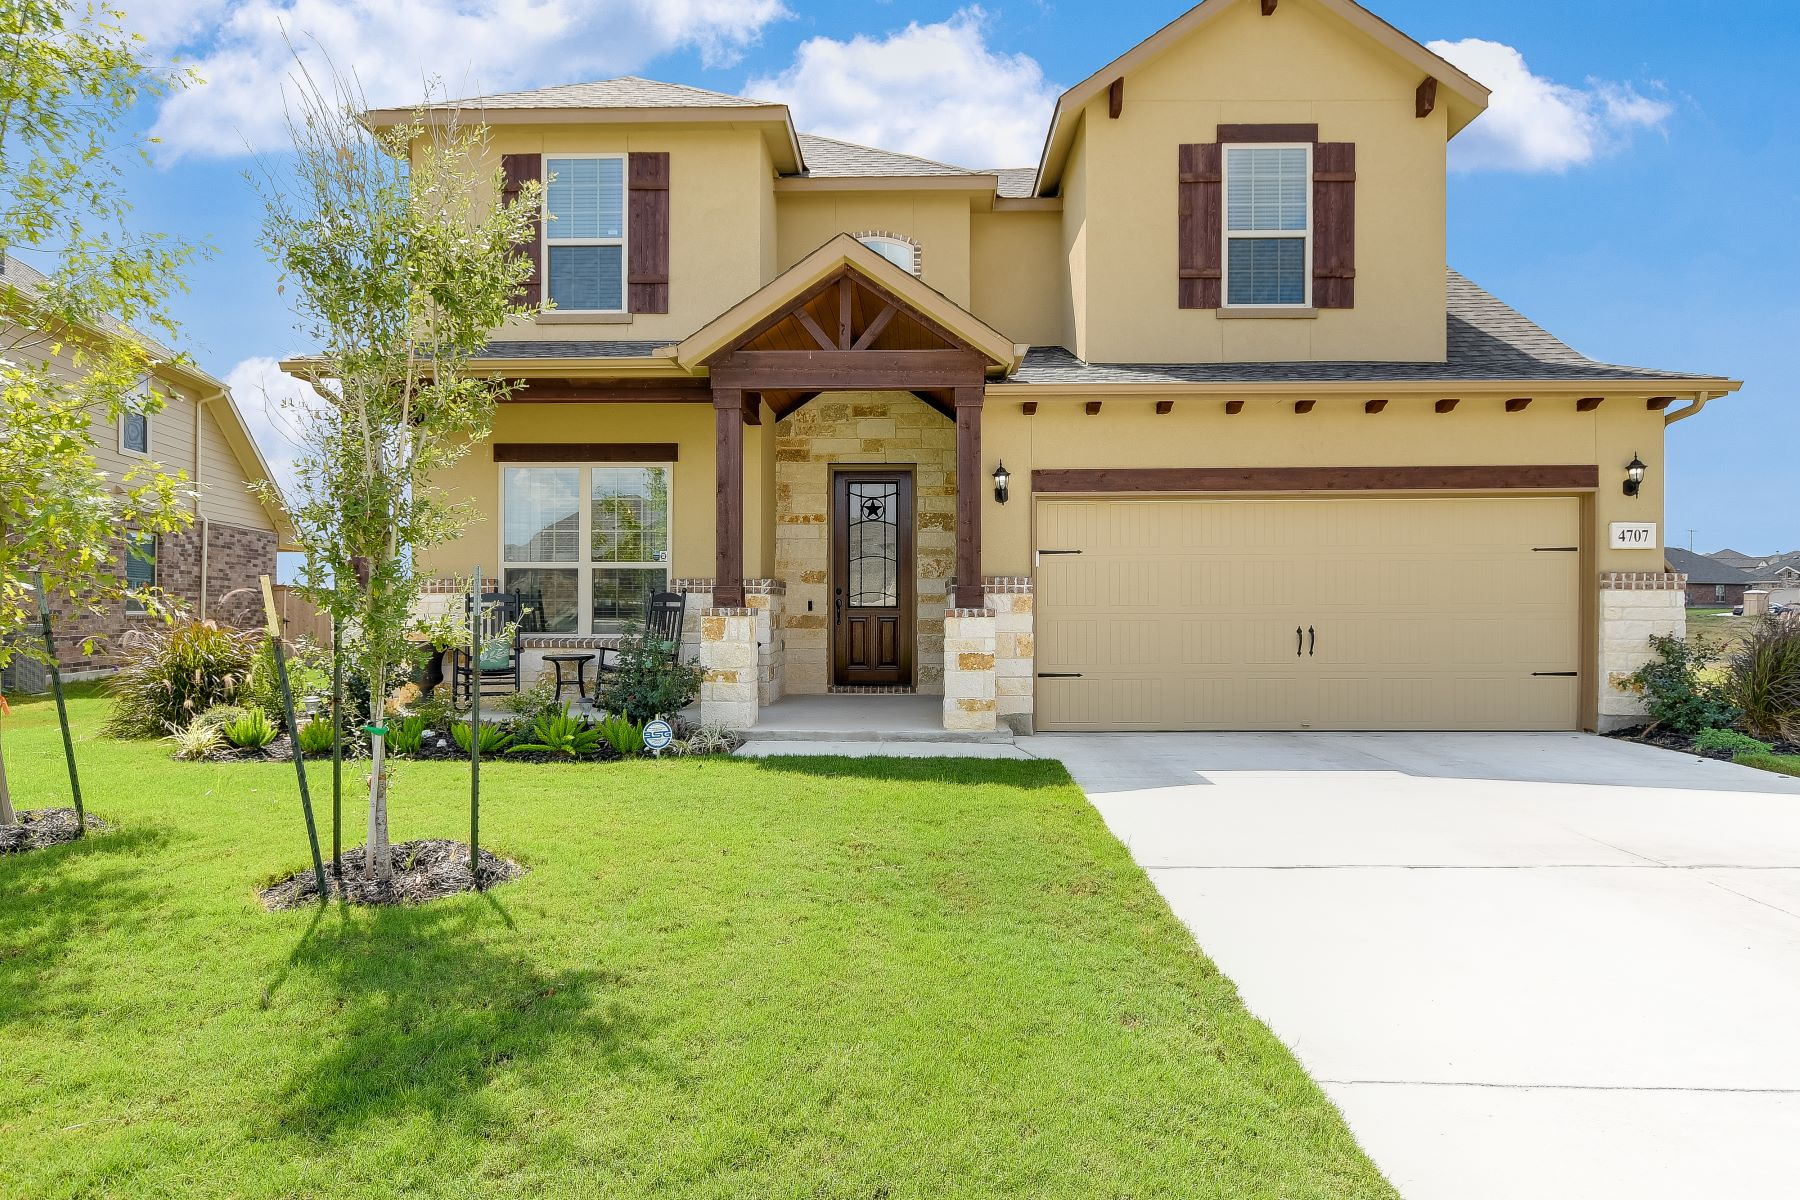 Single Family Homes for Sale at Two Story Gem with Multiple Builder Upgrades 4707 Island Hollow Marion, Texas 78124 United States